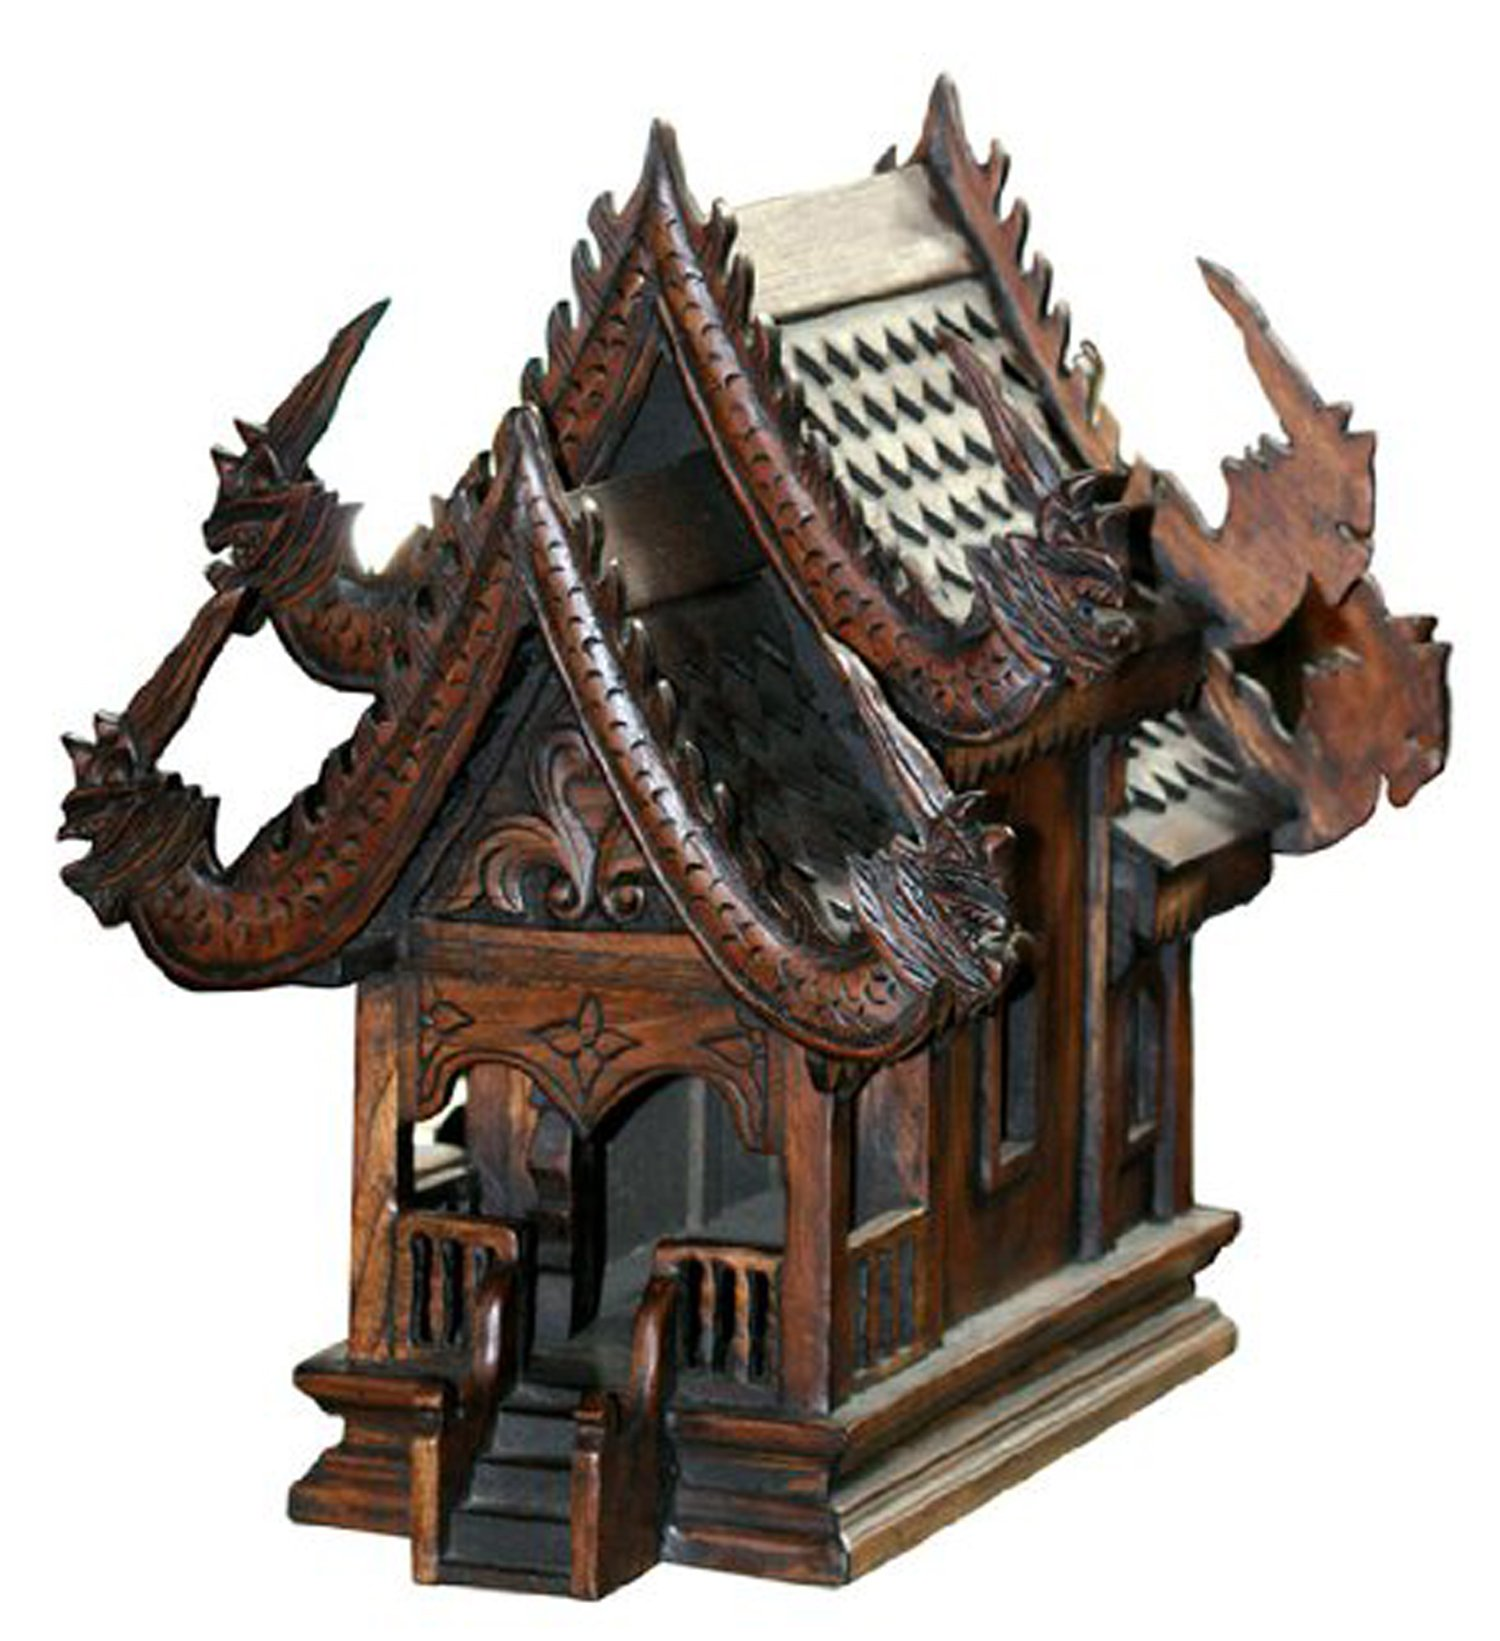 Thai Spirit House Large14 Sanpraphum Large Actual Size Thai Buddhist Wood Carving For Spiritual Haunted Spirit House Temple, by Thai Spirit House